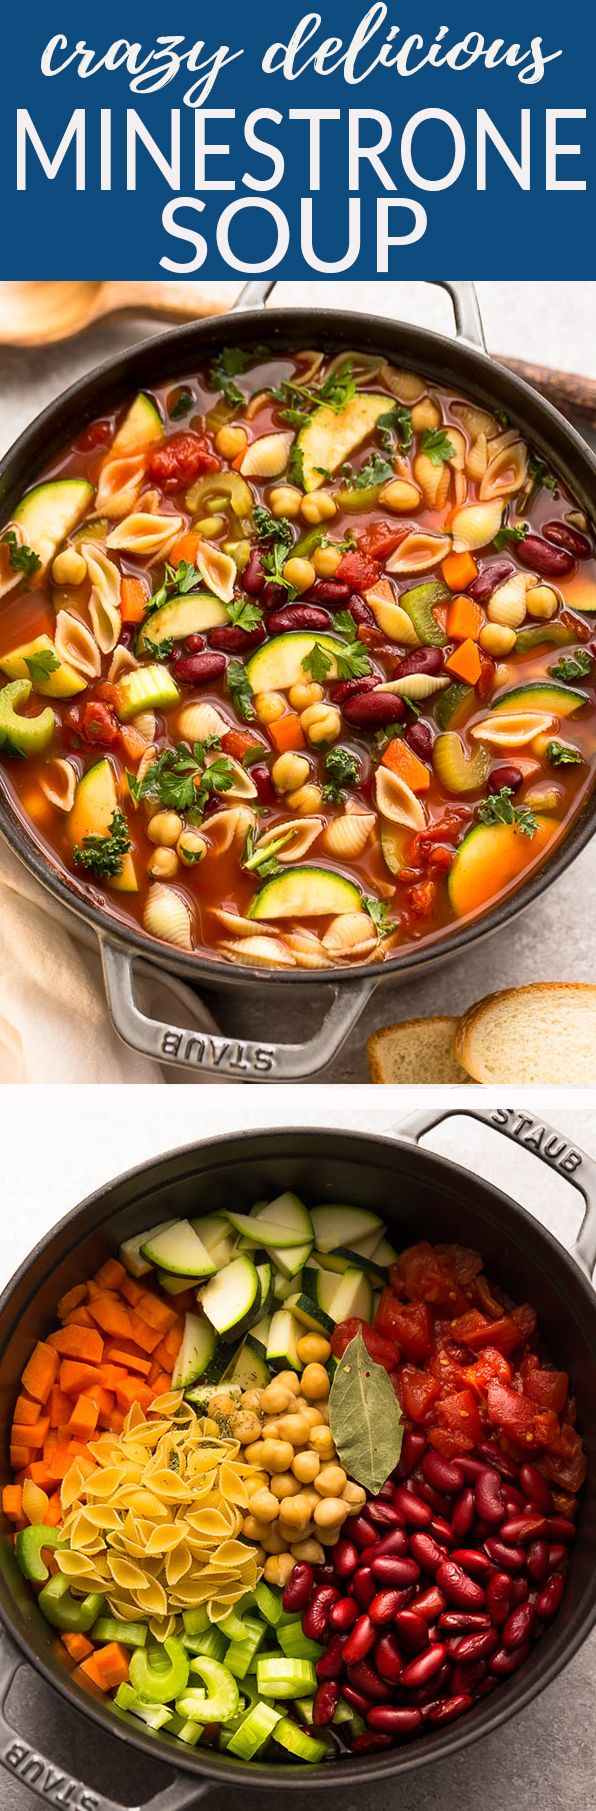 Homemade Minestrone Soup makes the perfect easy comforting meal. Best of all, it's an easy set and forget recipe and is so much healthier and better than Olive Garden's version! Made entirely in your slow cooker or the stovetop and SO delicious! #minestronesoup #soup #minestrone #vegetables #vegetarian #heart #comfortfood #soup #olivegarden #copycat #olivegardencopycat